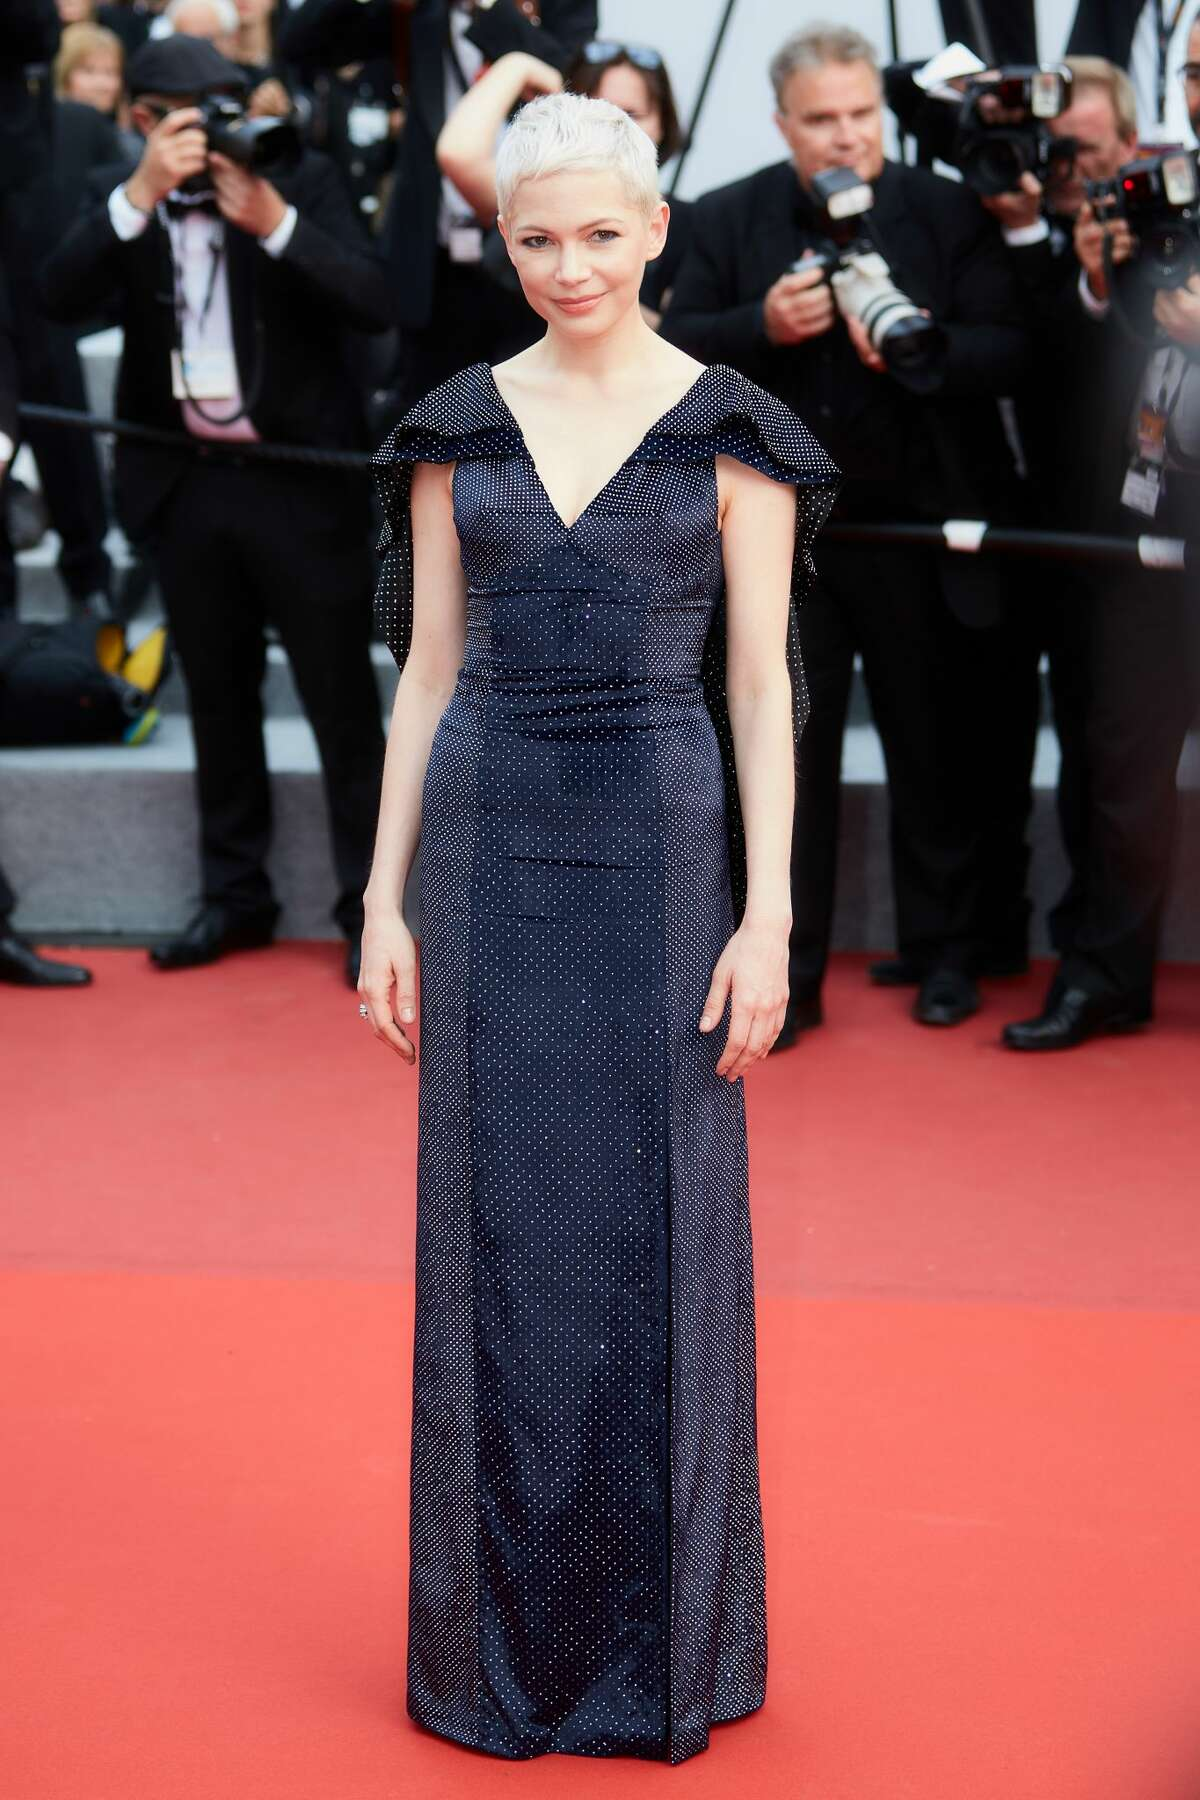 Michelle Williams will play Anne Weying.